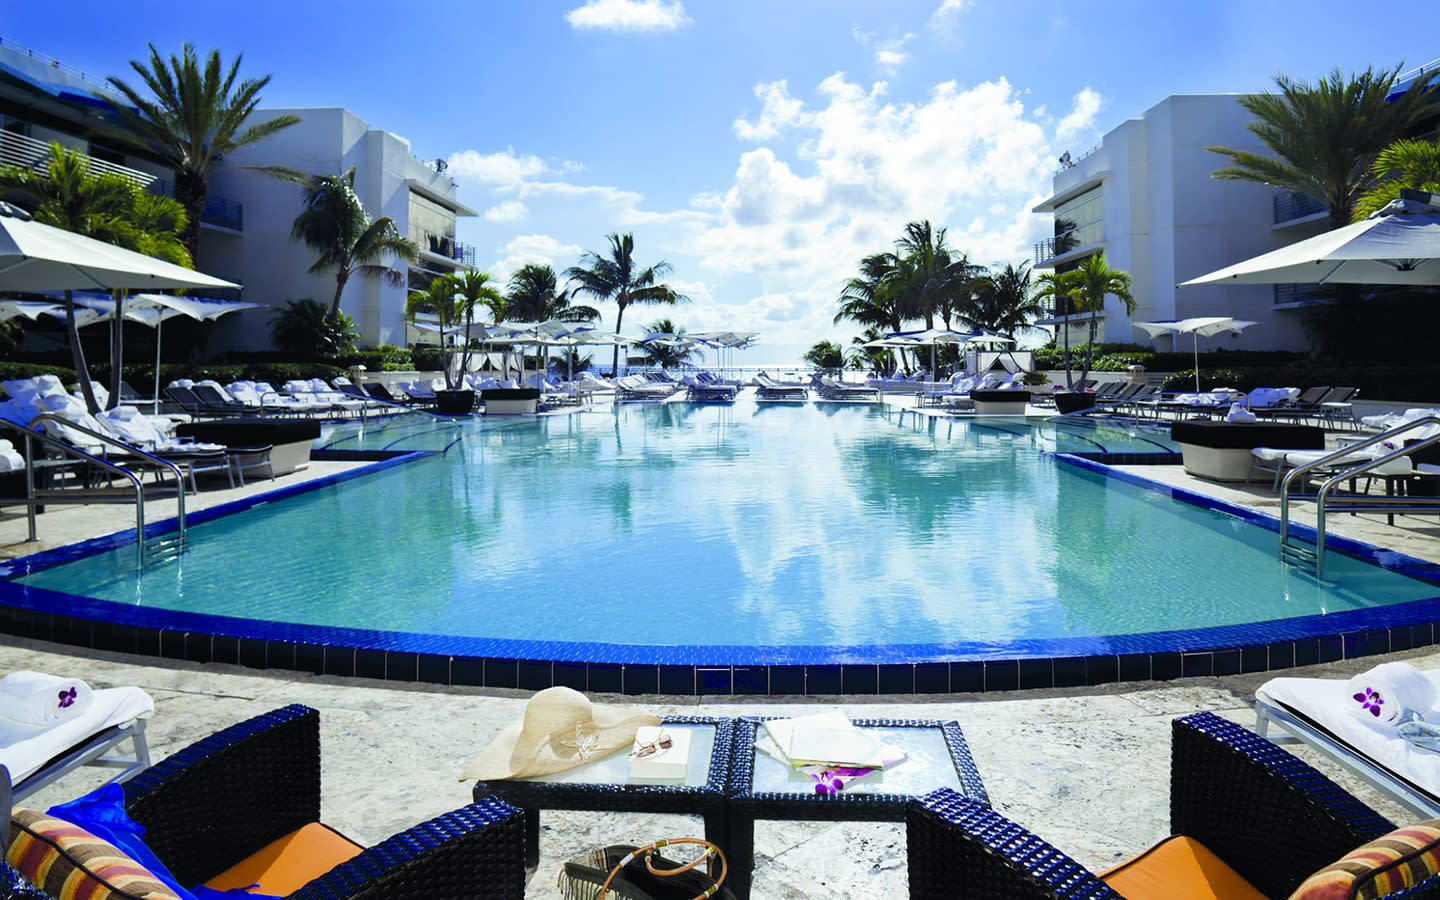 The Ritz-Carlton, South Beach pool